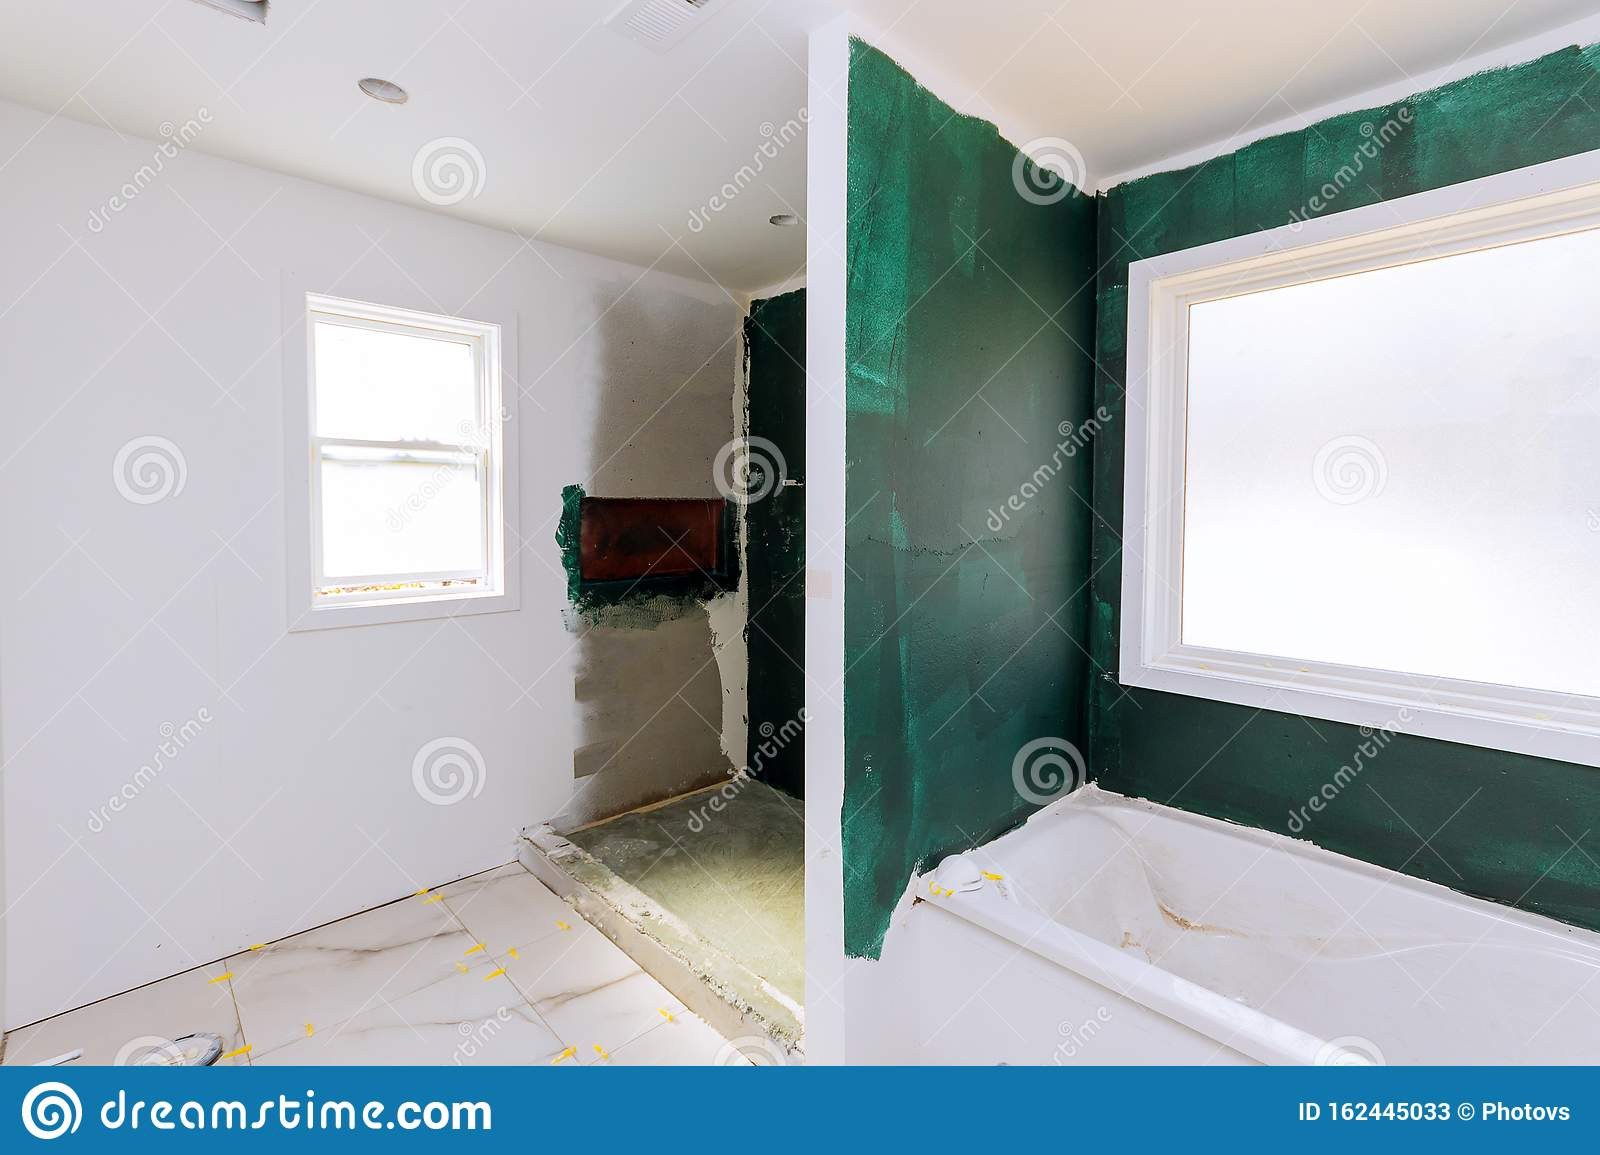 Bathroom Unfinishing New Apartments Repair Installation Of Interior Drywall Finish Stock Image Image Of Bath Interior 162445033